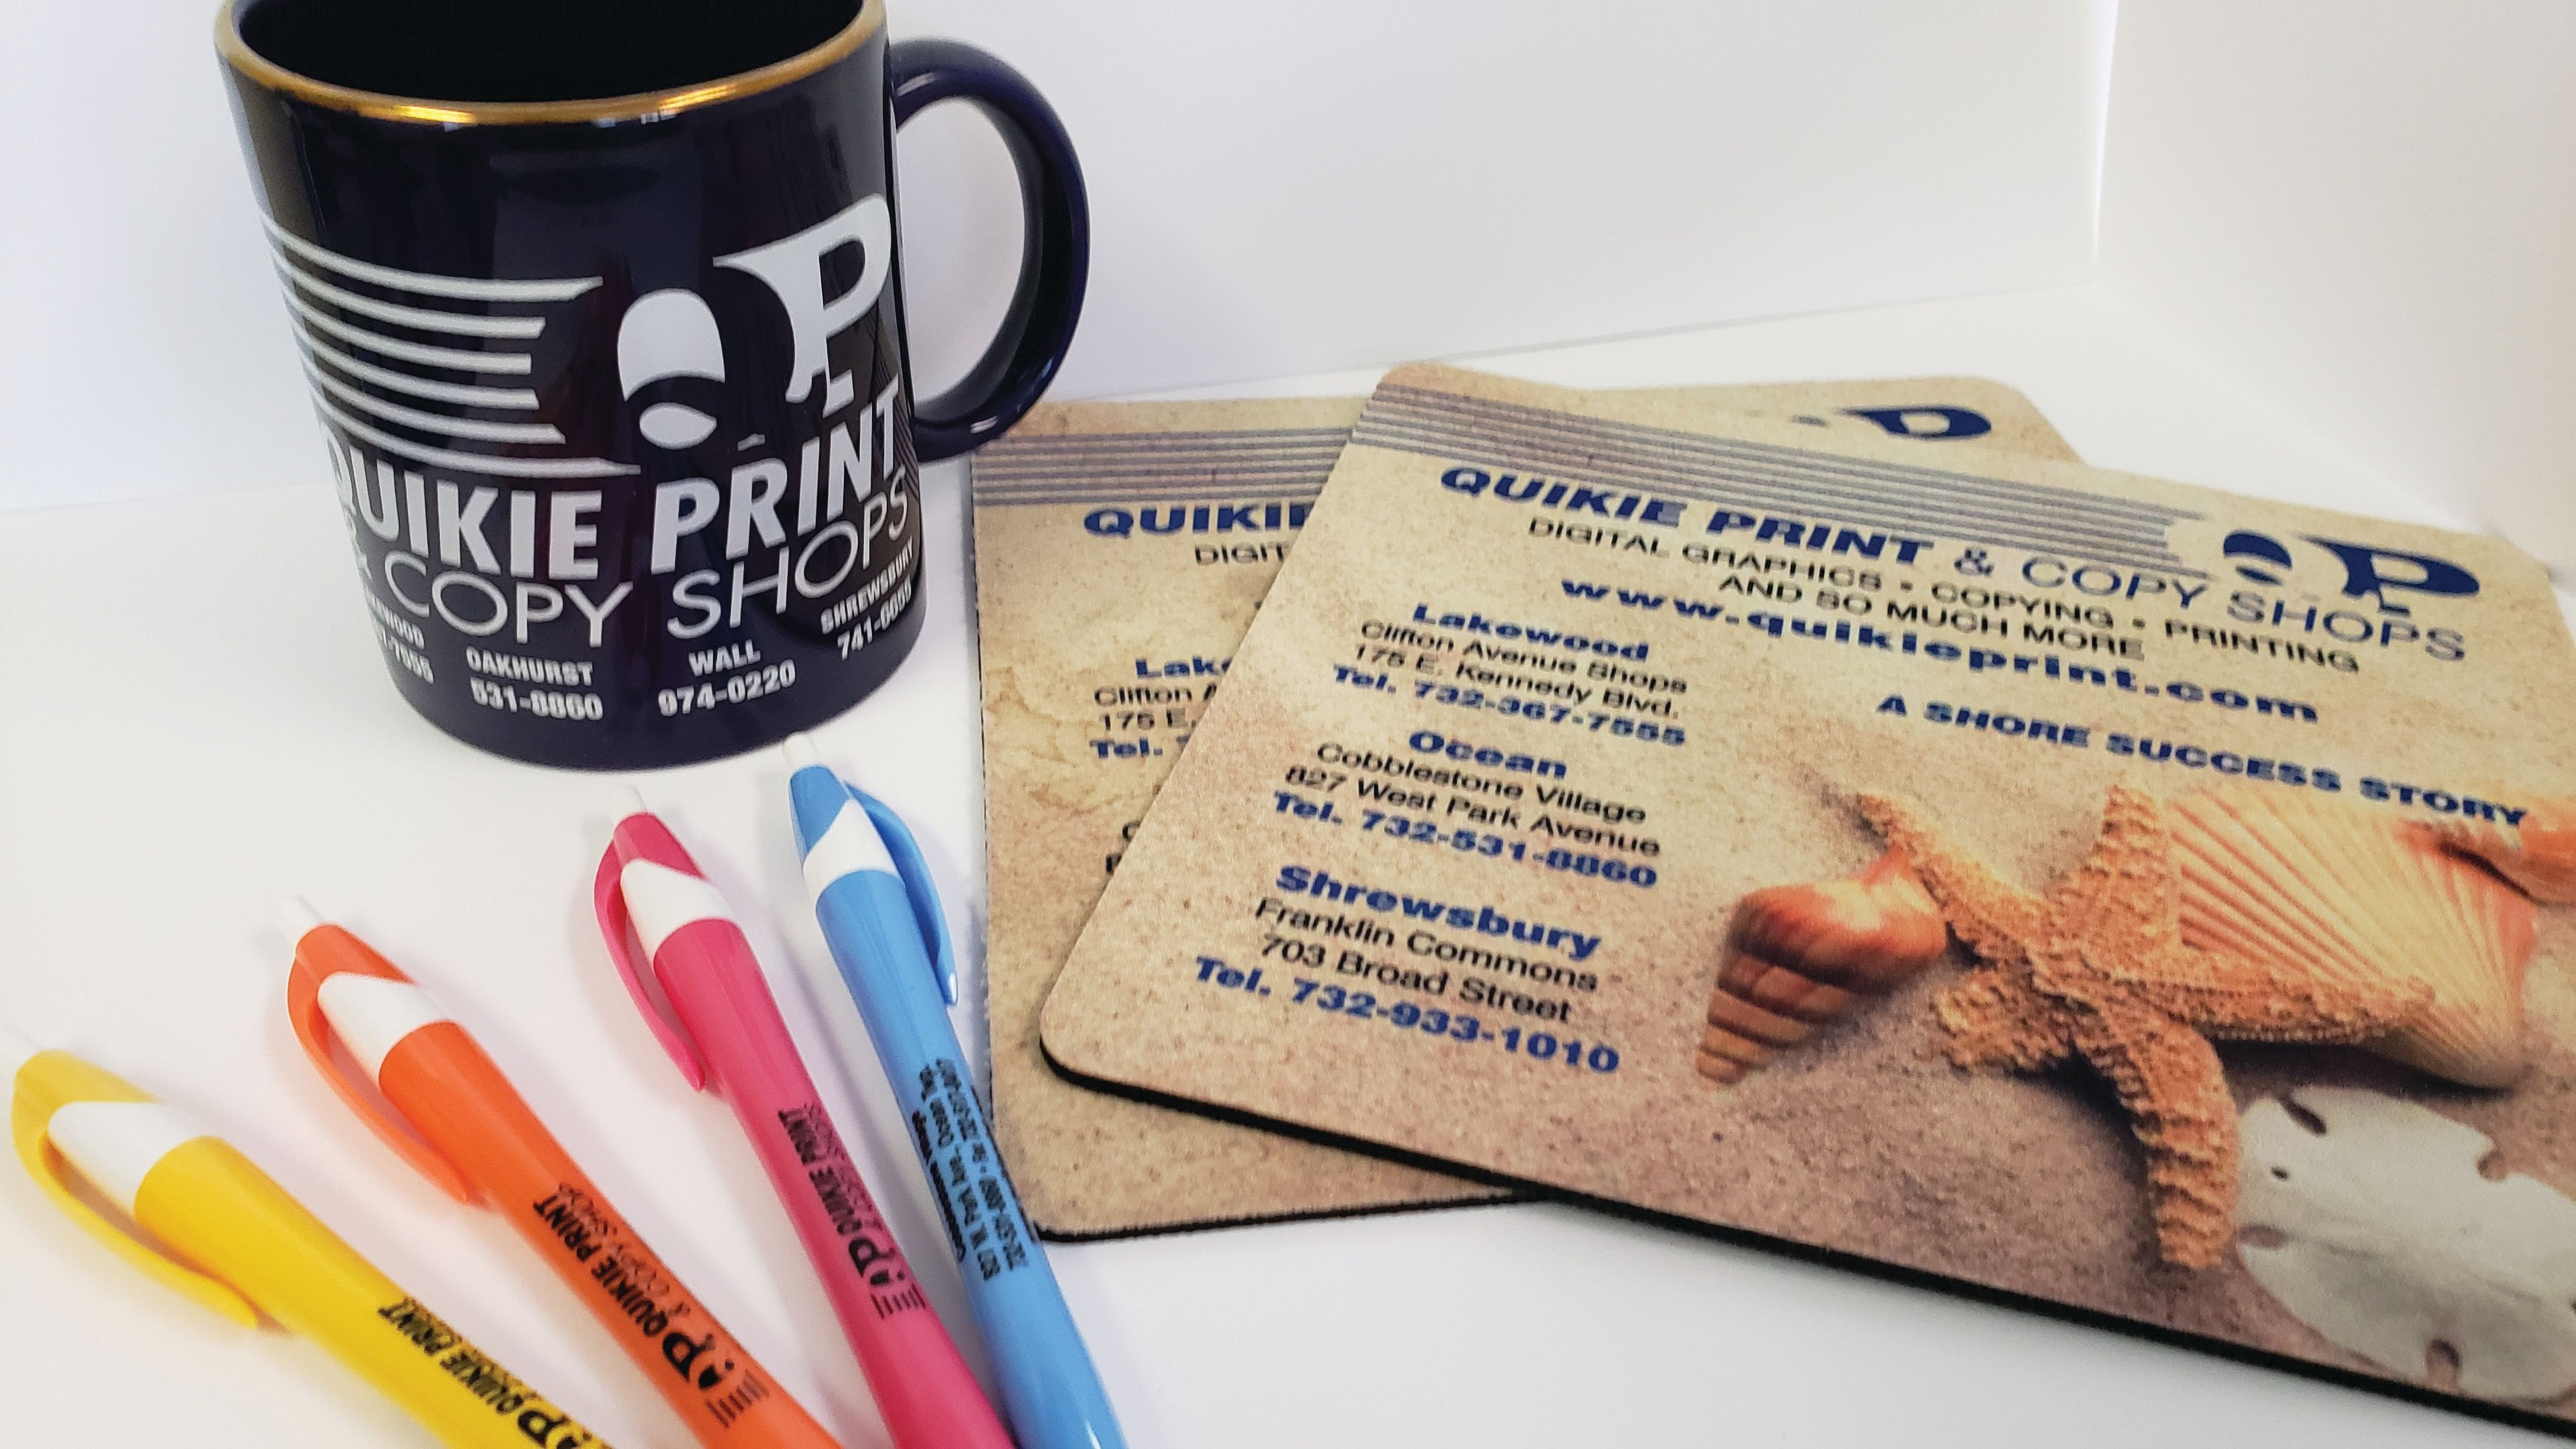 Marketing / Promotional Items